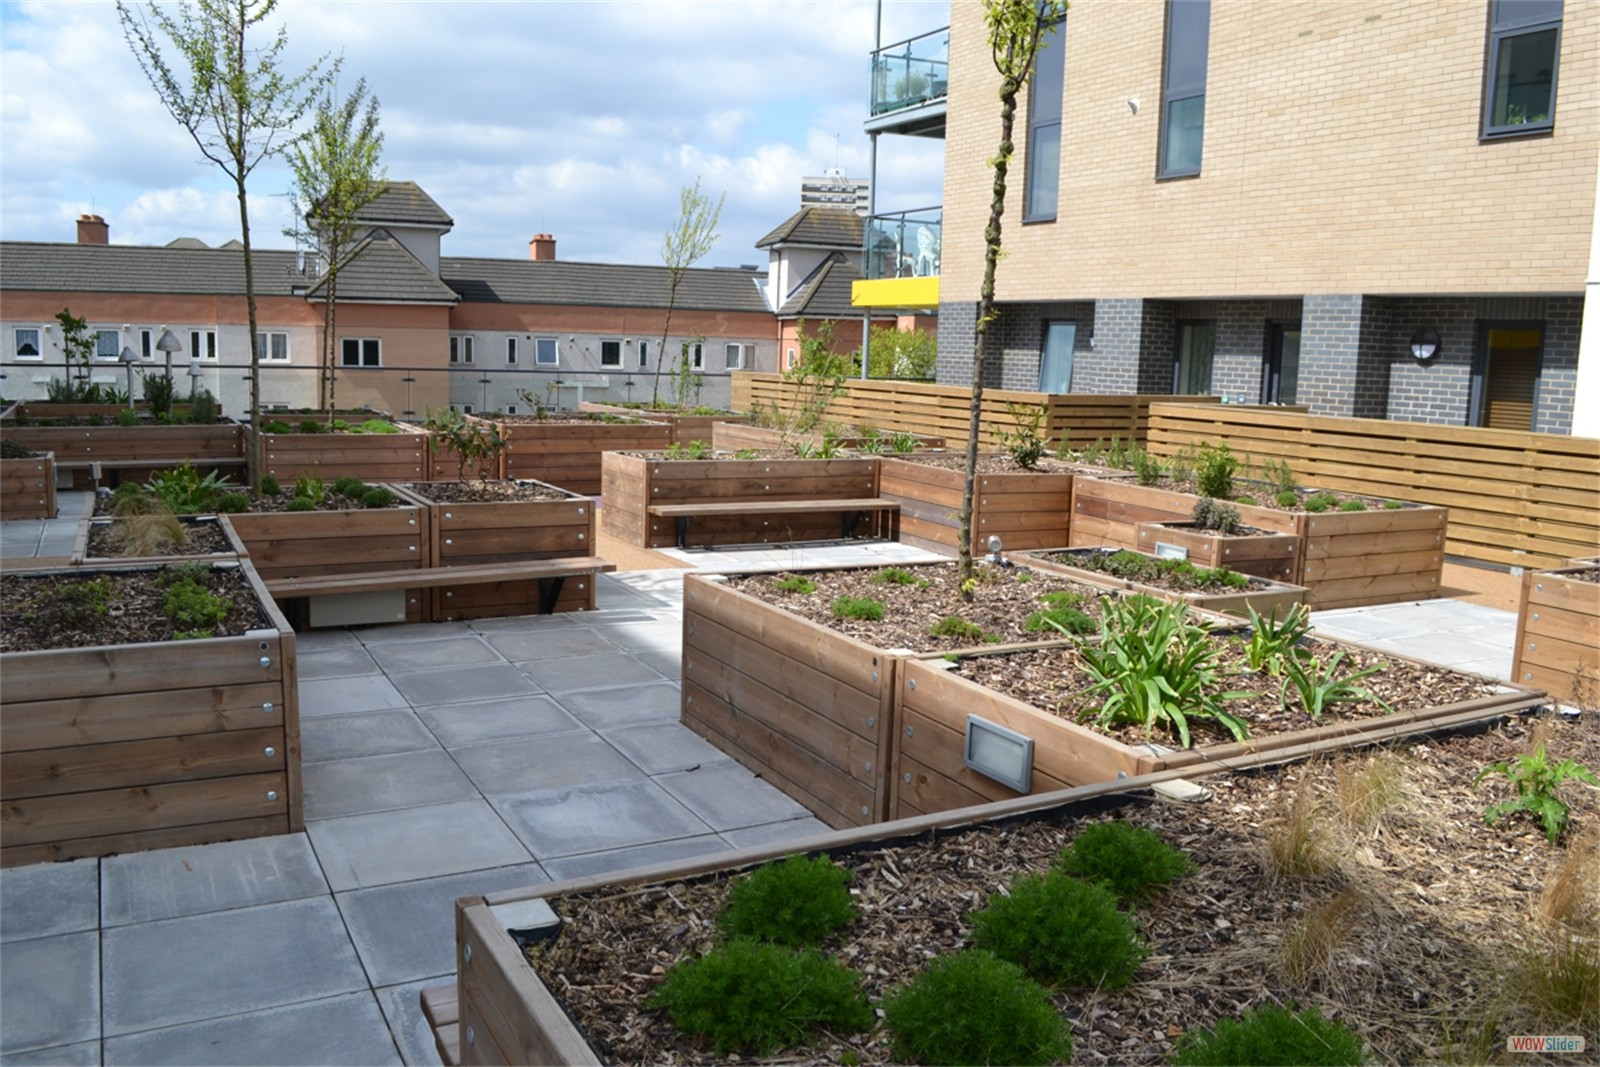 c124h - Gosset Street, Hackney, roof garden planters and seating